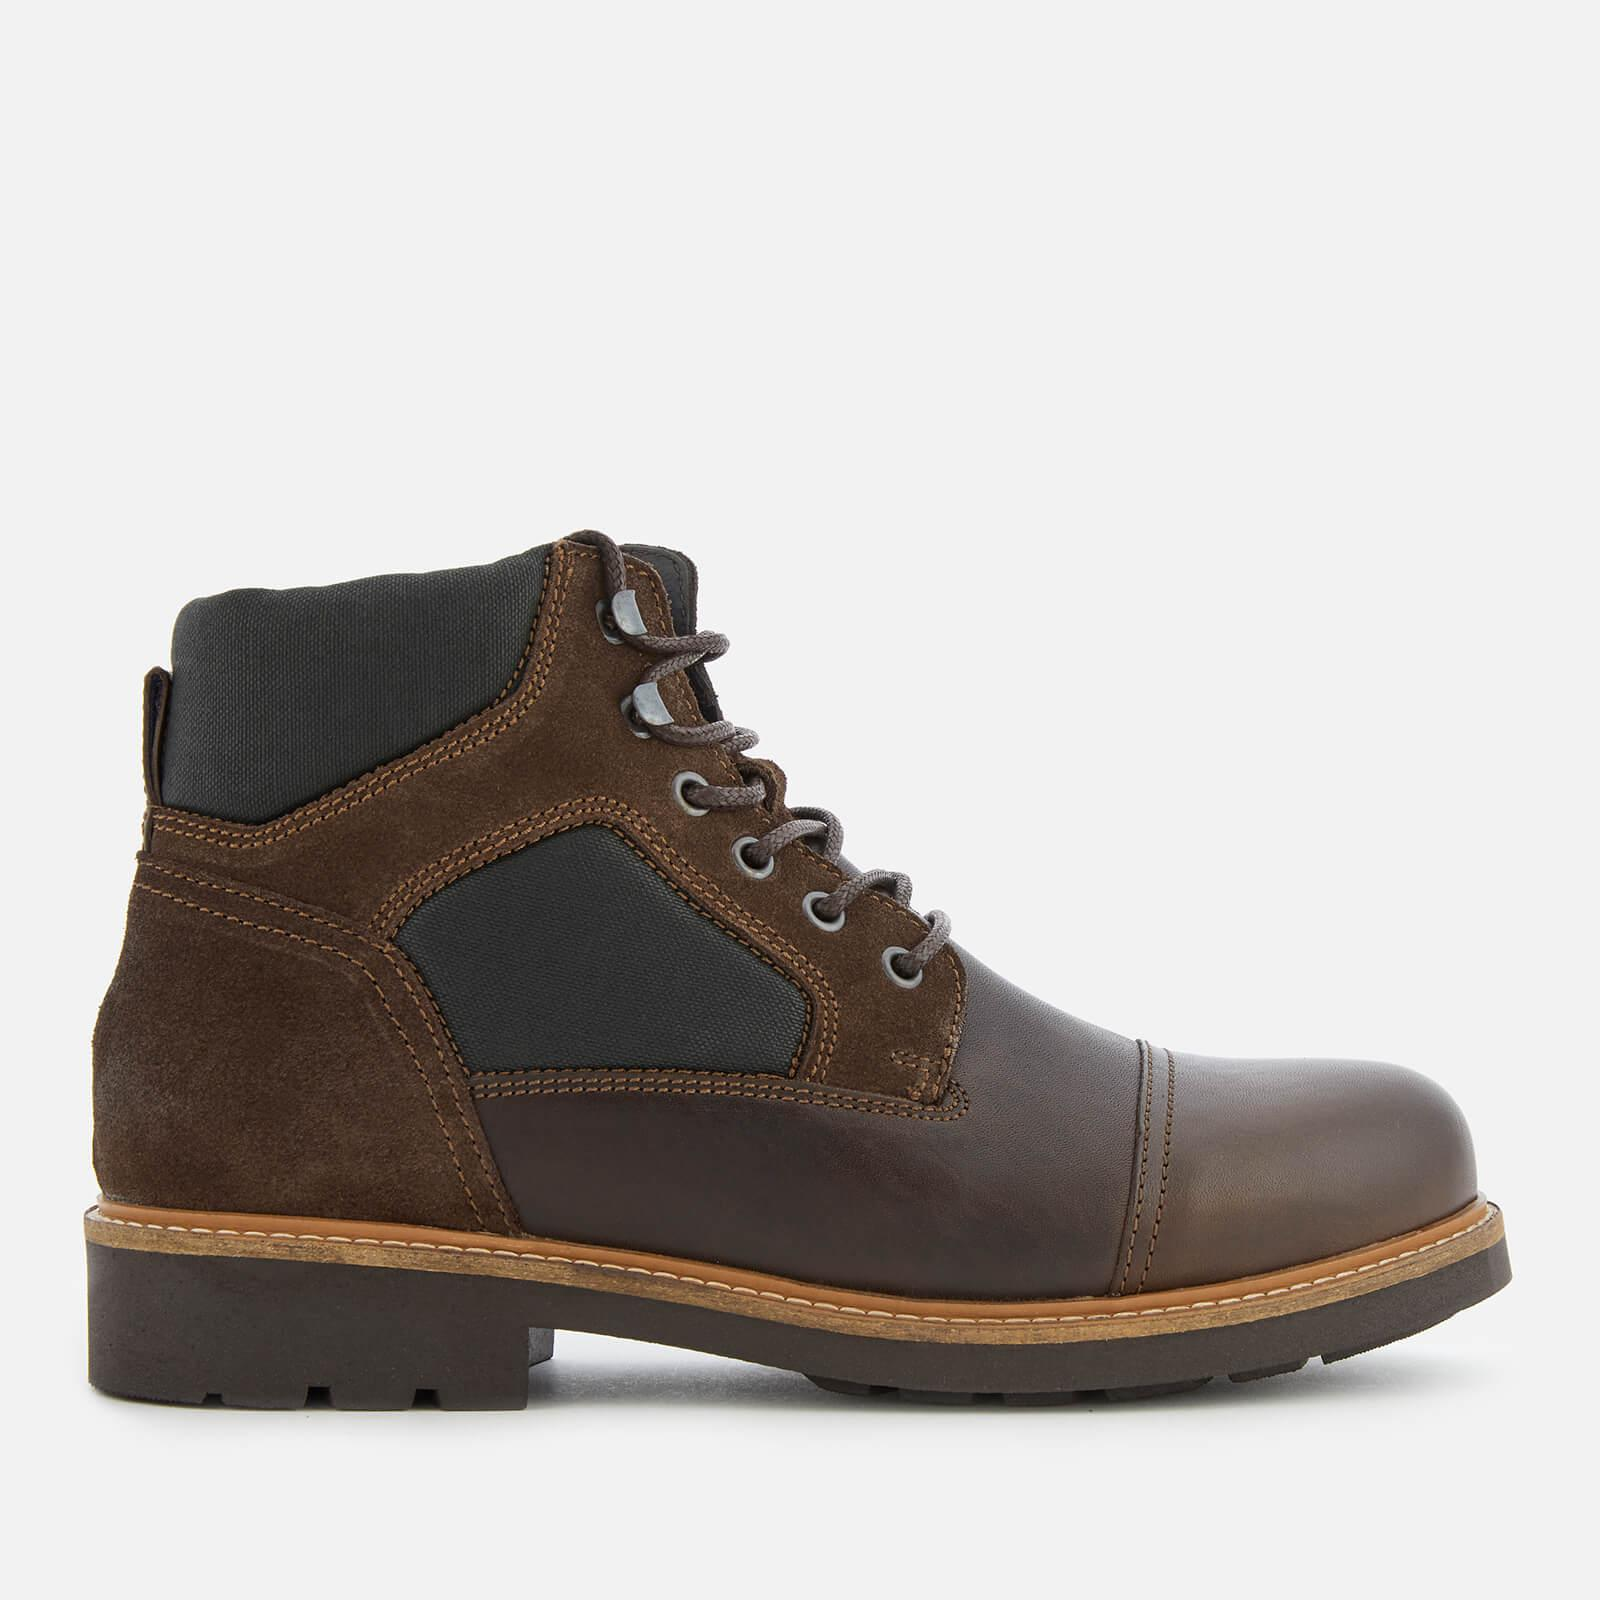 5b0ffc50f Tommy Hilfiger Active Leather Lace-up Boots in Brown for Men - Lyst